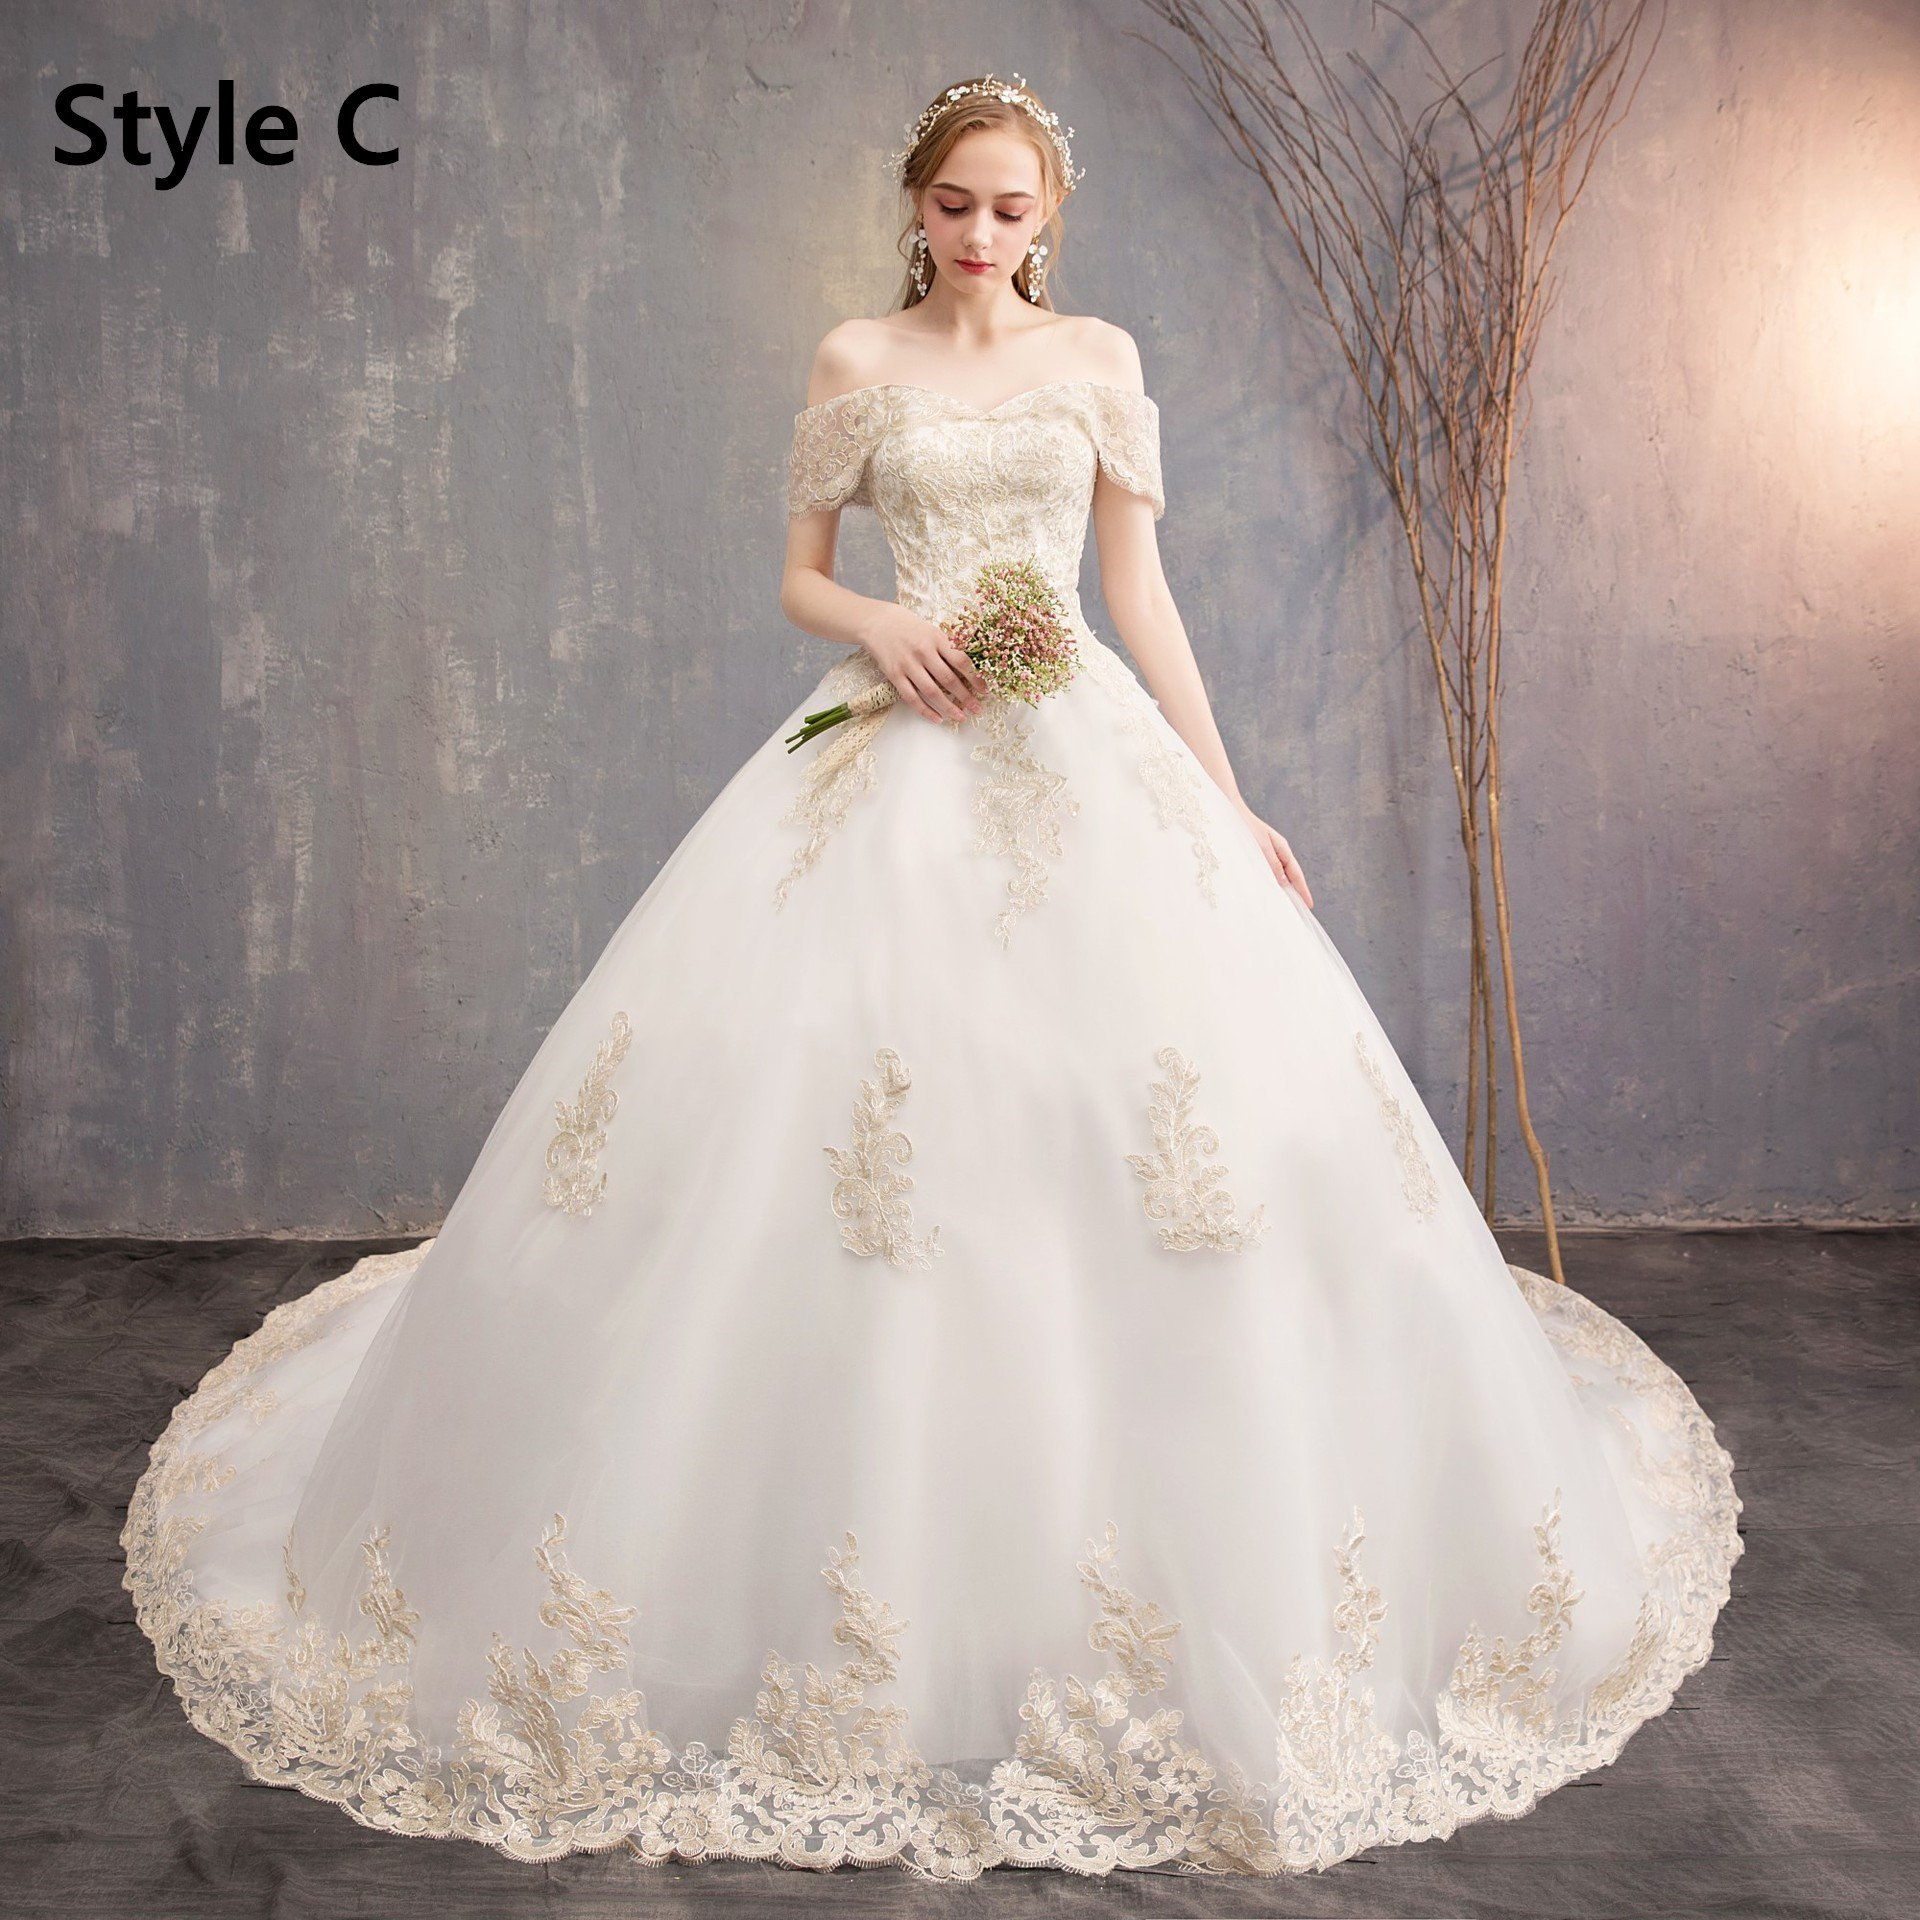 Lace Wedding Dresses 2020 New 715 White Eyelet Lace Dress Korean Dress White Lace Dress Styles Mother Of The Bride Dresses Uk Long Sleeve Satin Wedding Dress Lace Styles For Baby Girl